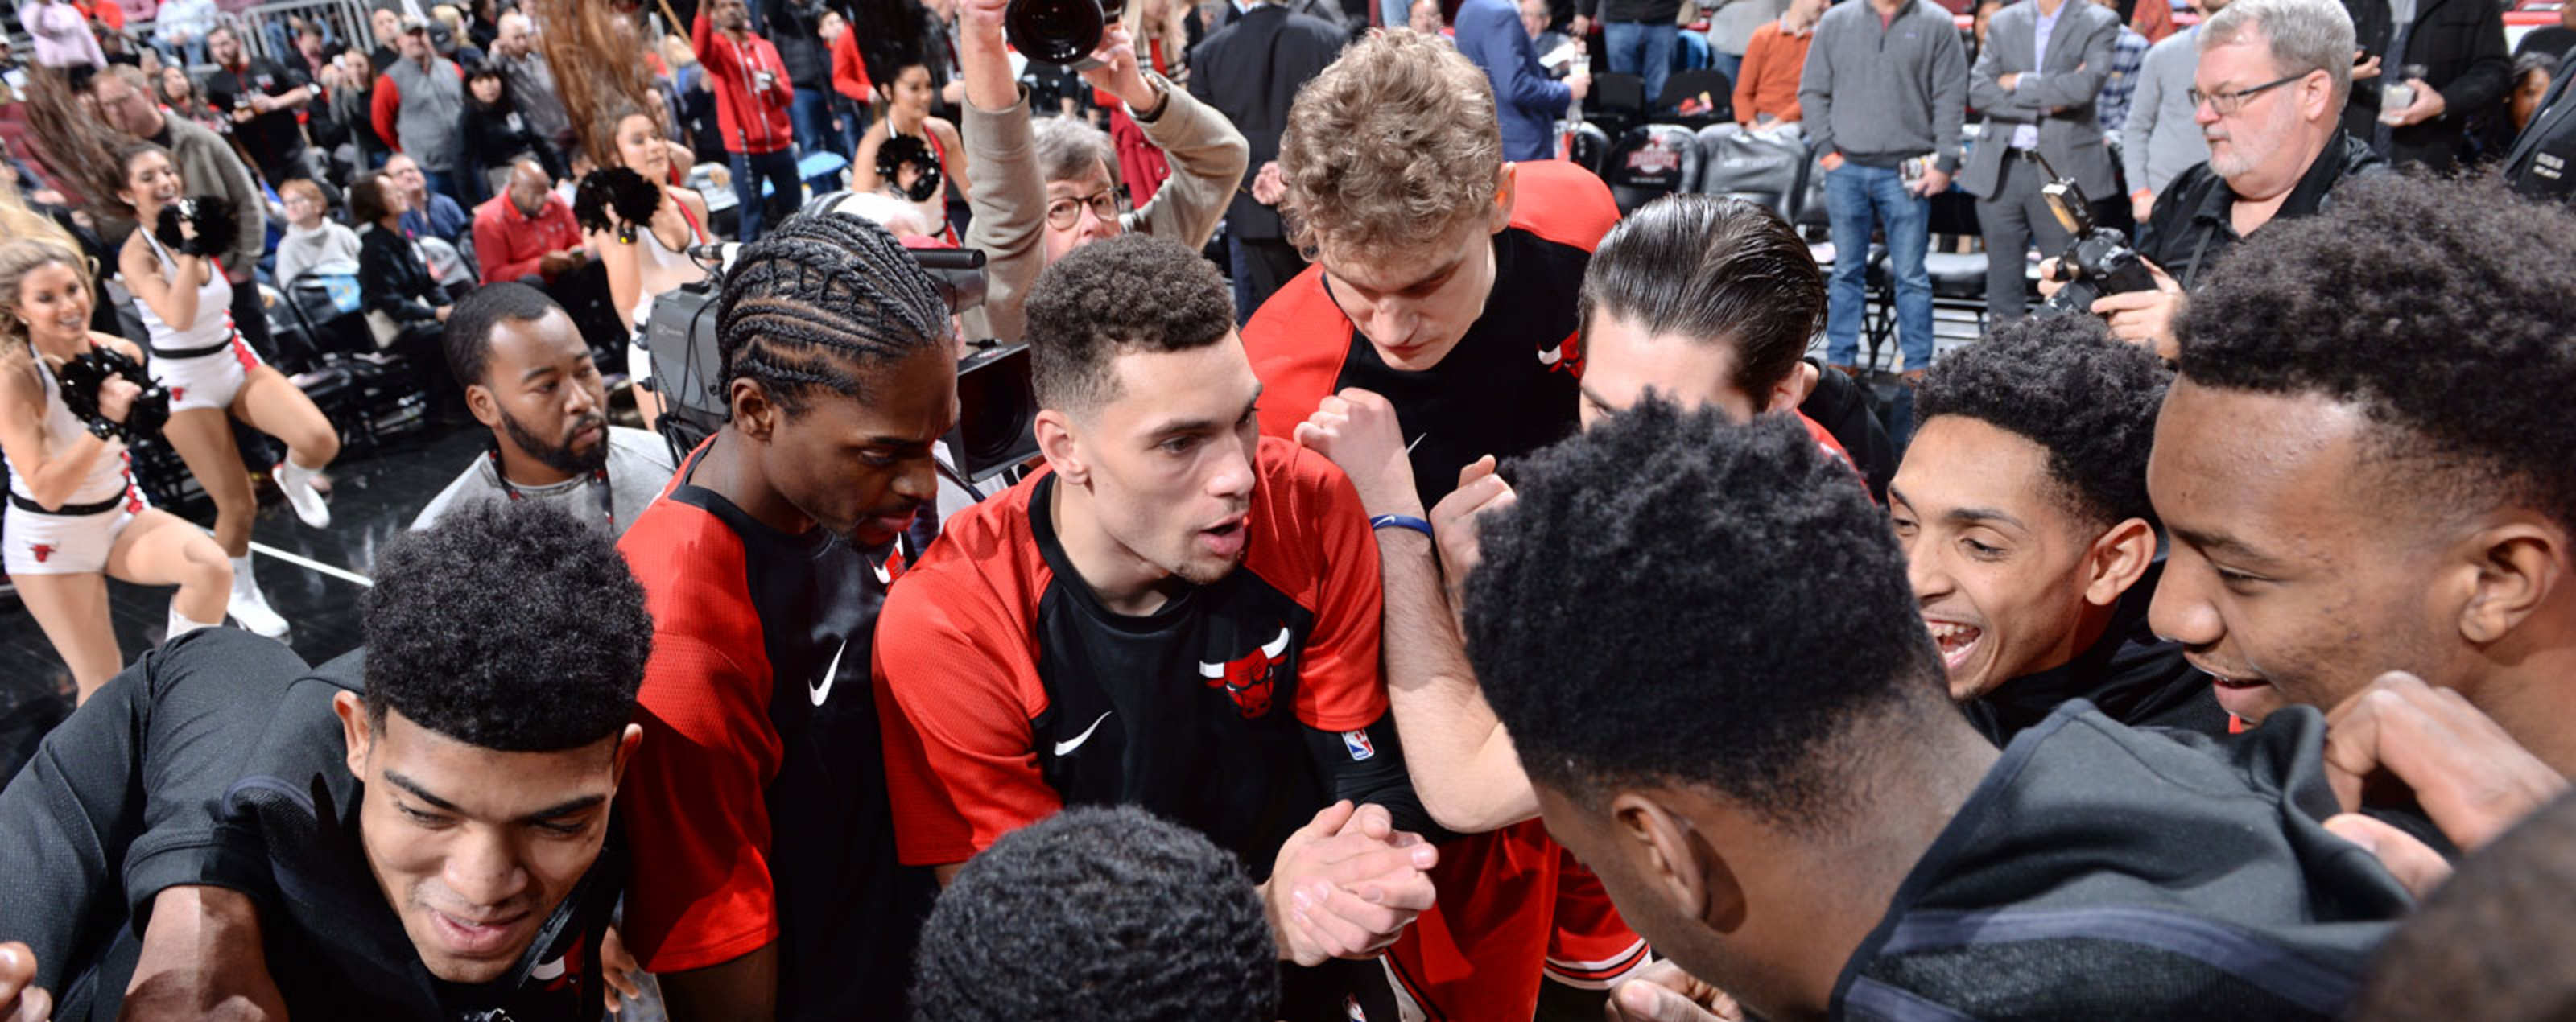 The Chicago Bulls huddle before a game against the Sacramento Kings.